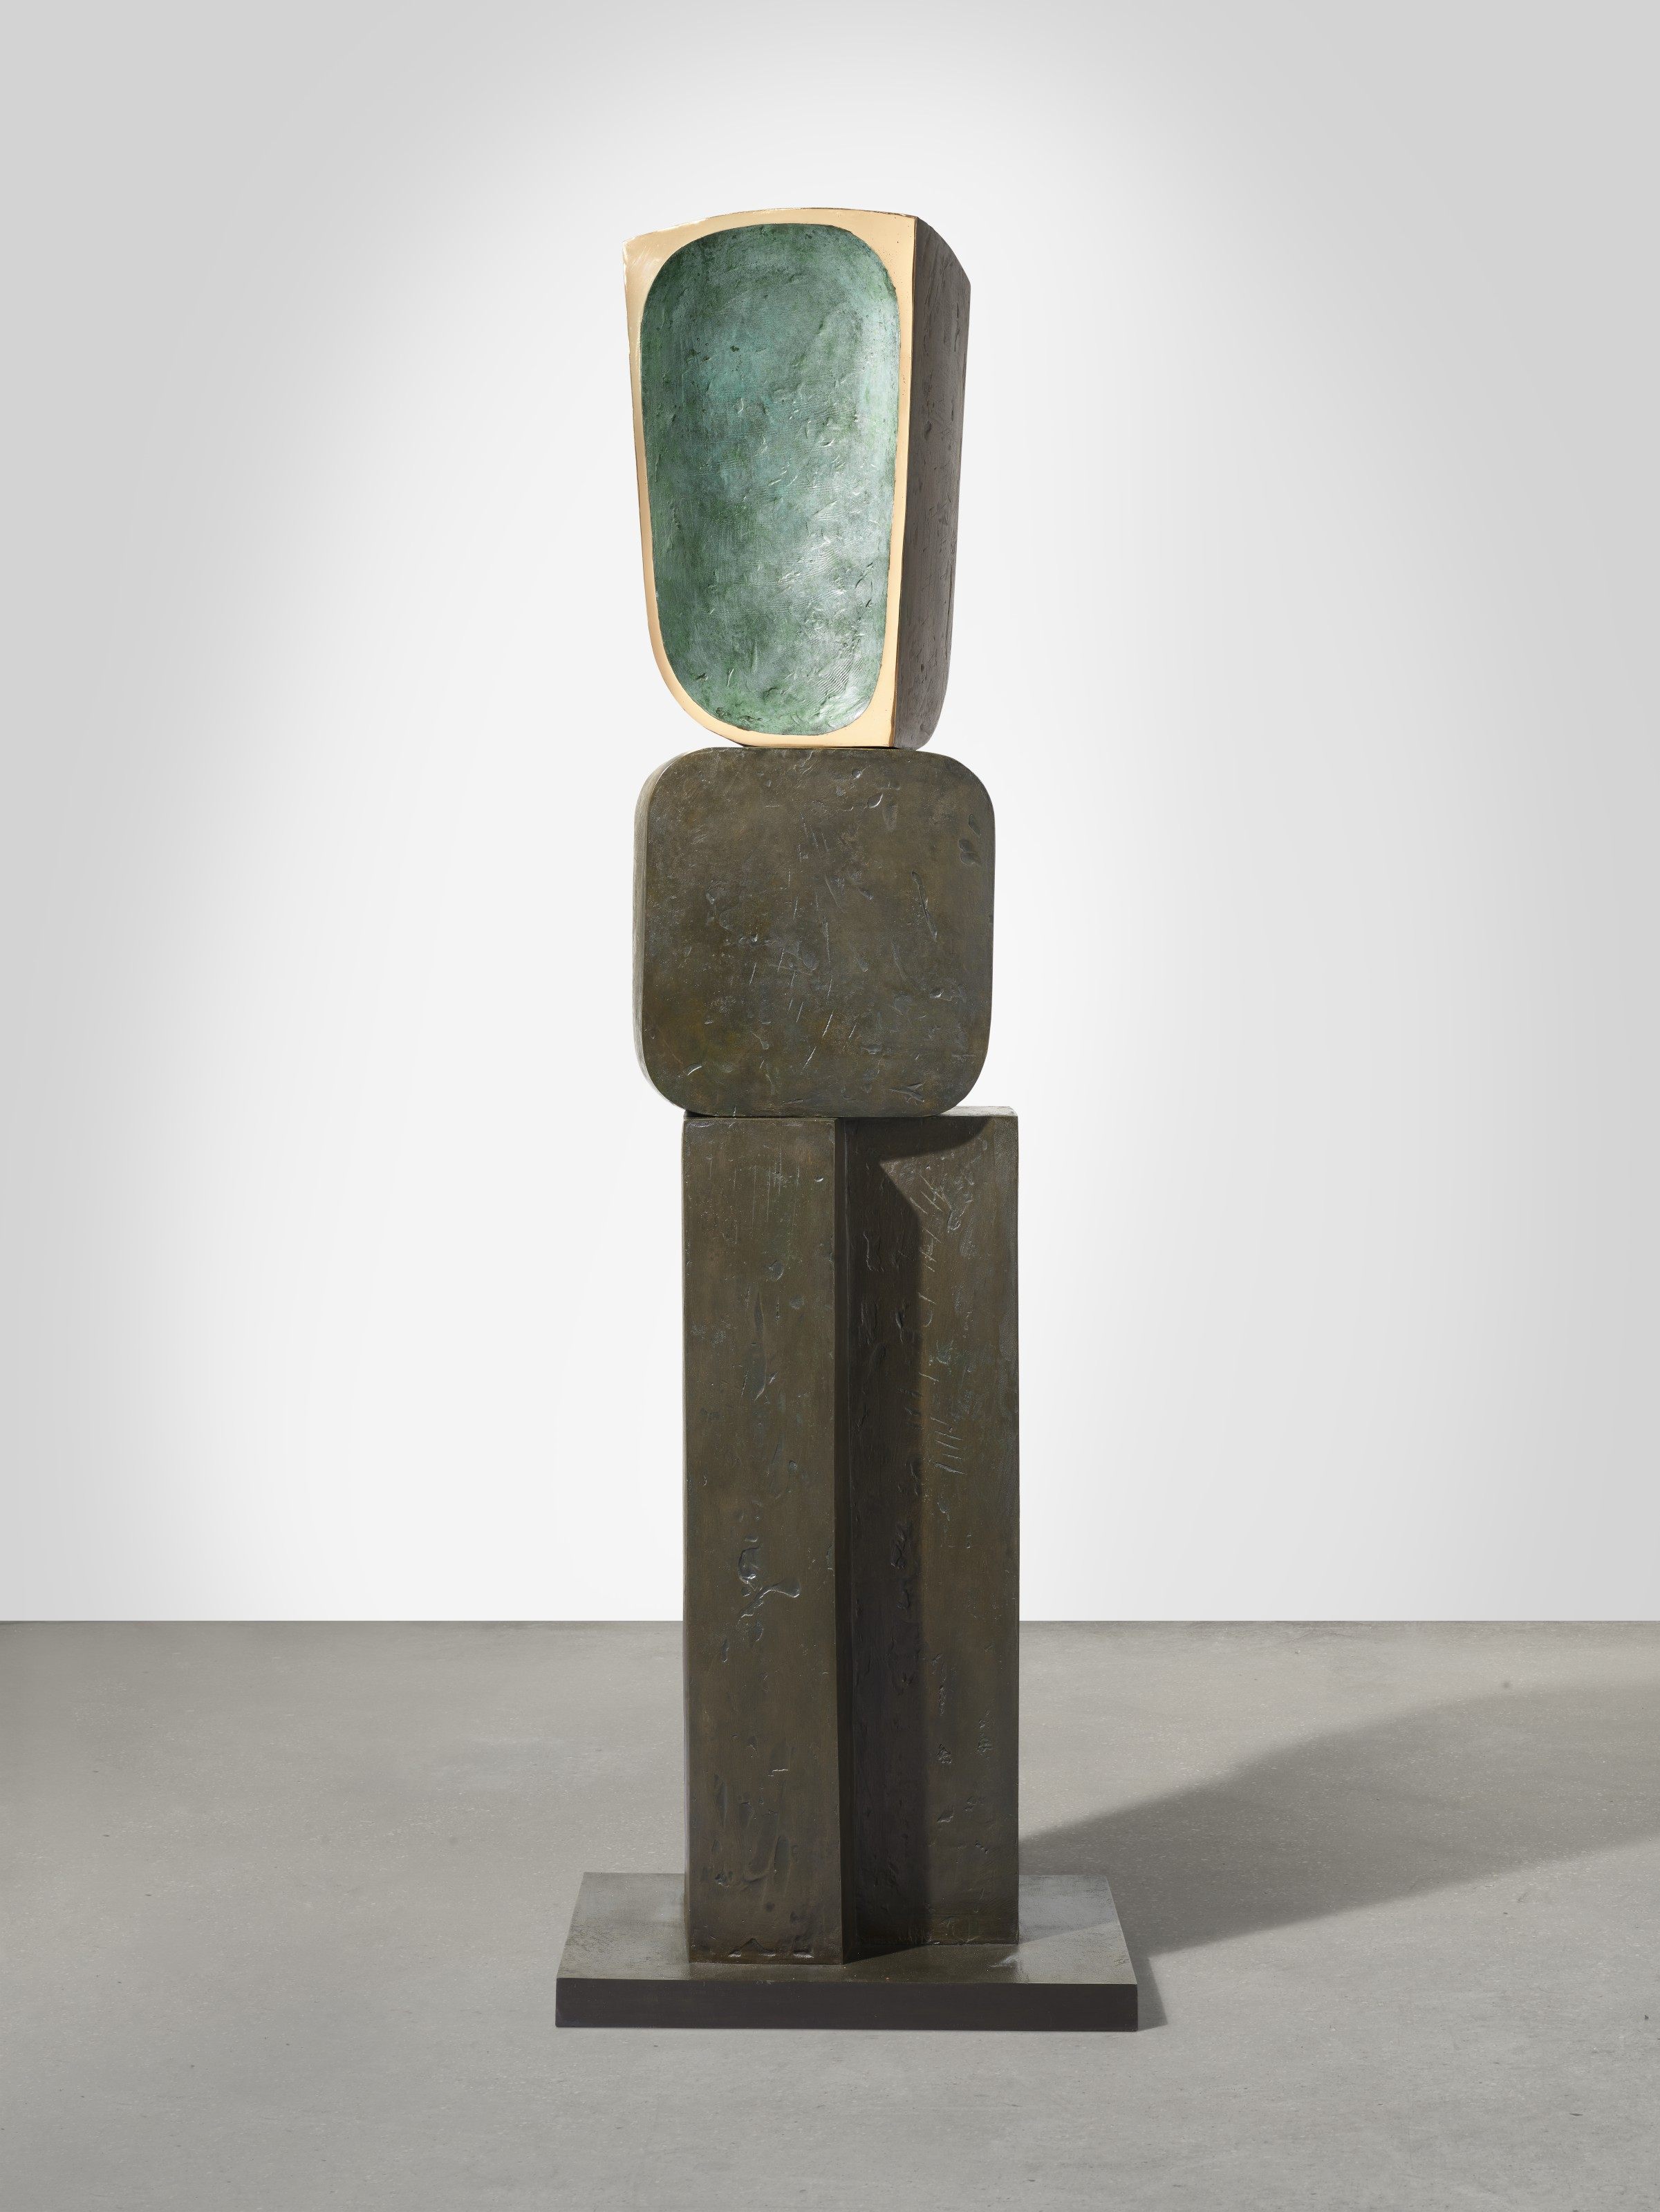 Barbara Hepworth (1903-1975), Parent II, 1970-71. Height 94⅛  in (238.8  cm). Sold for $7,110,000 on 13 May 2021 at Christie's in New York.Artwork© Bowness